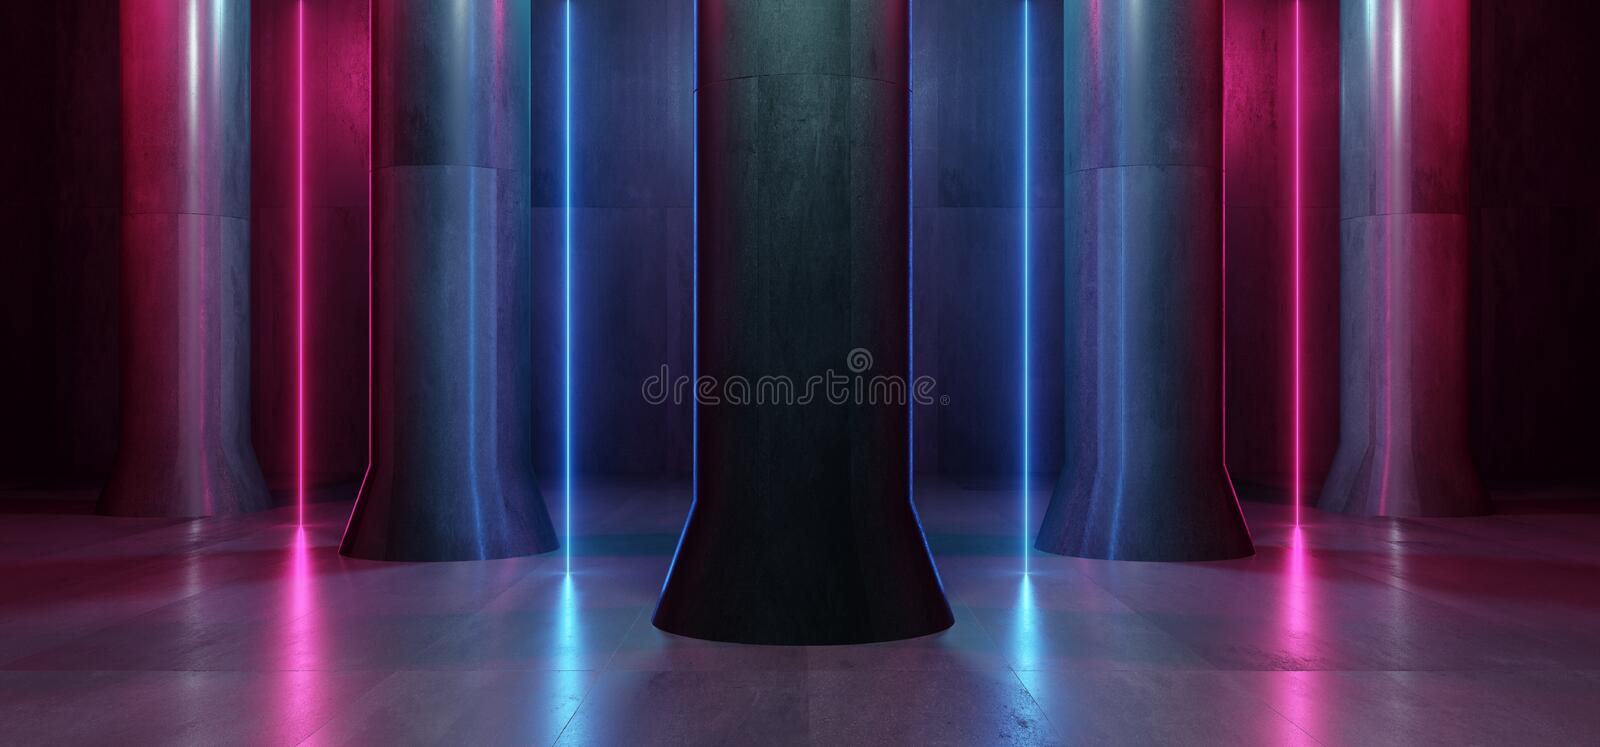 Neon Lgihts Purple Blue Magical Retro Modern Column Grunge Concrete Hall Room Studio Stage Futuristic Sci Fi Stone Dark Empty royalty free illustration